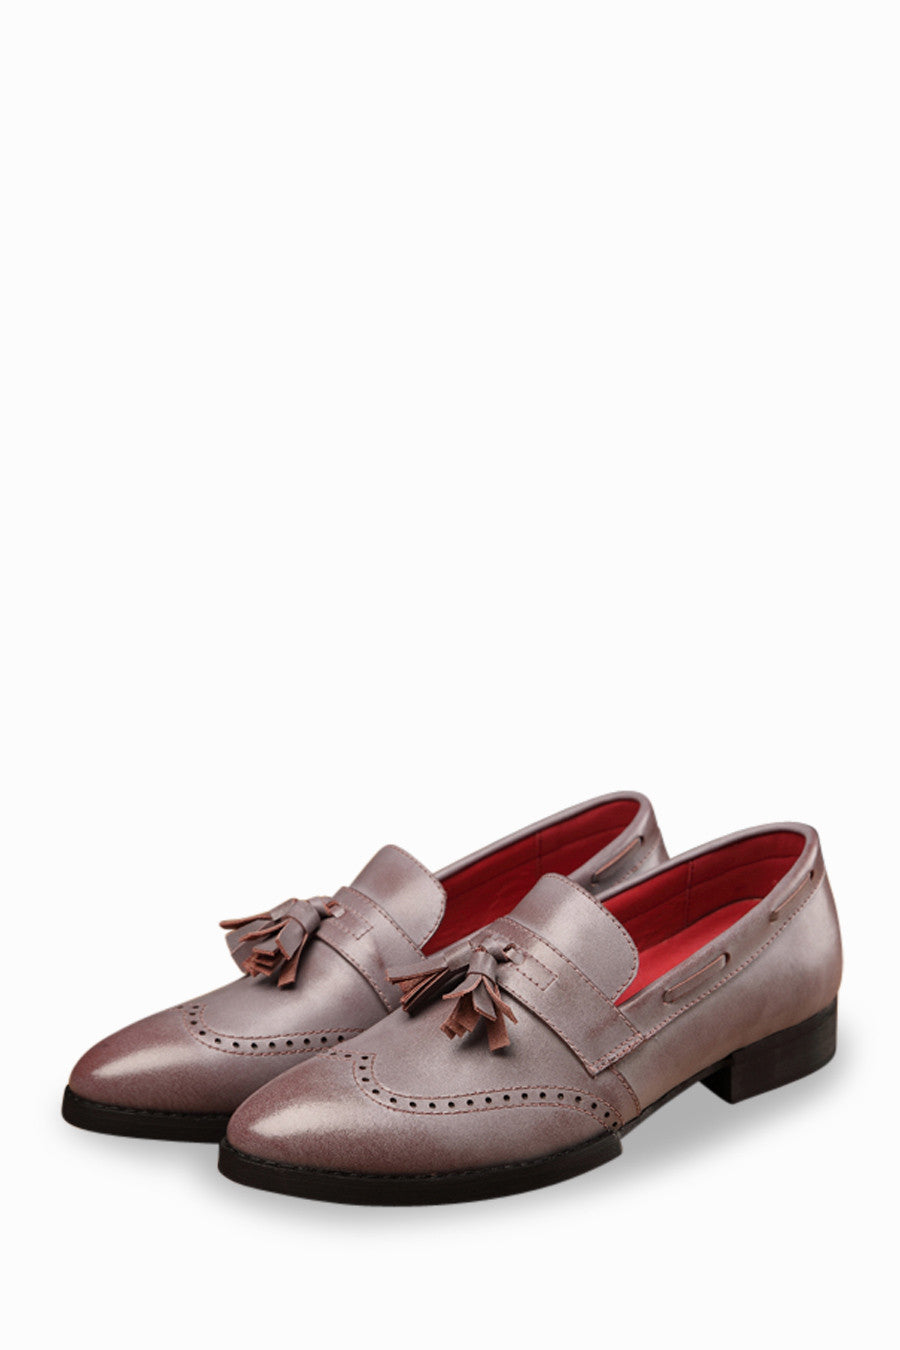 Men's Genuine Leather Brogue Wingtip Shoes In Purple